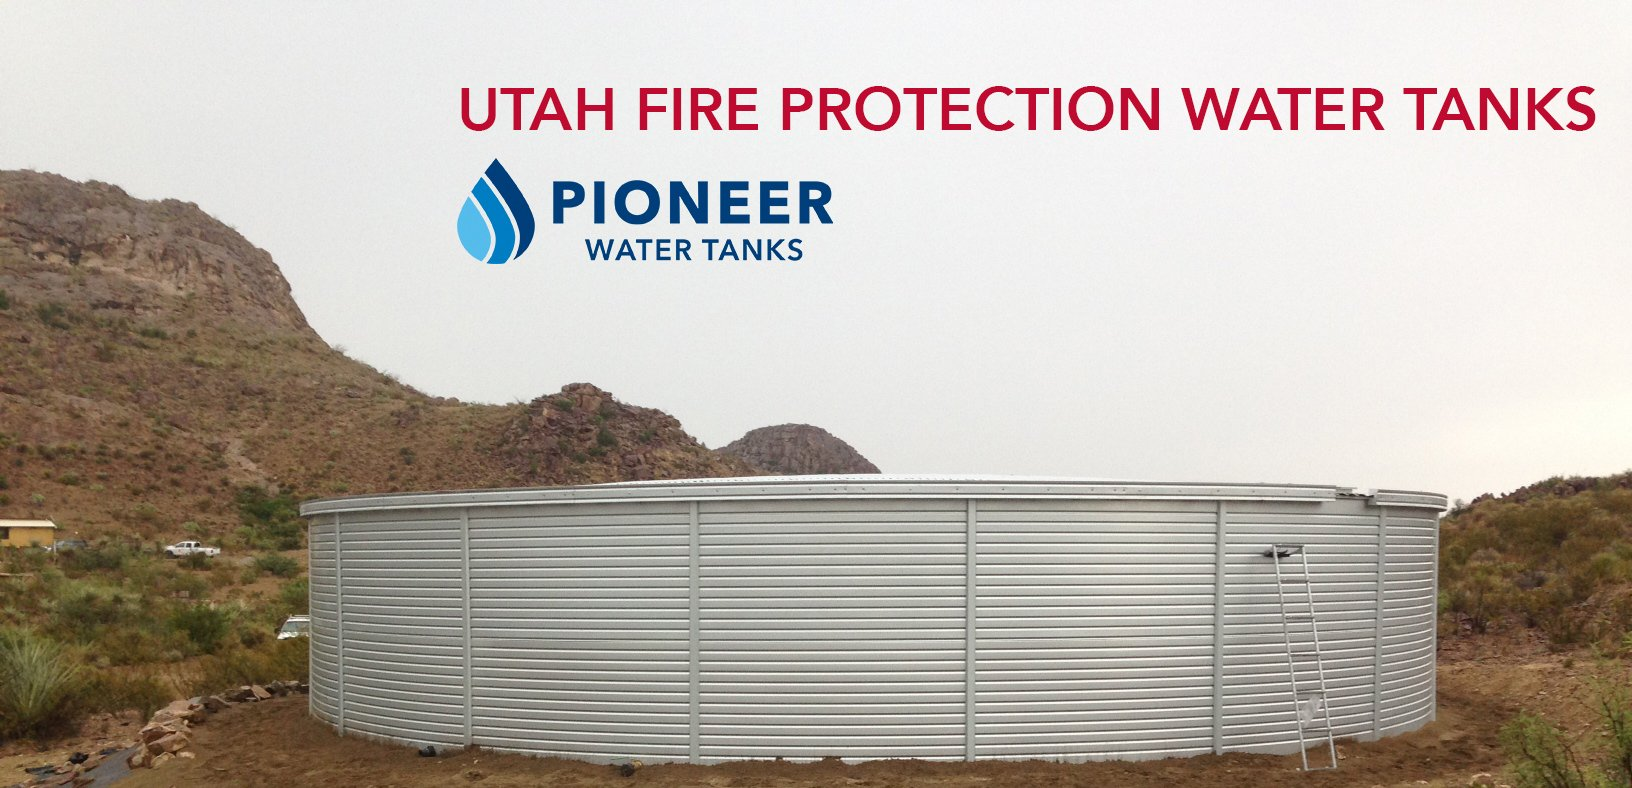 Utah Fire Protection Water Tanks Fire Protection Water Tanks